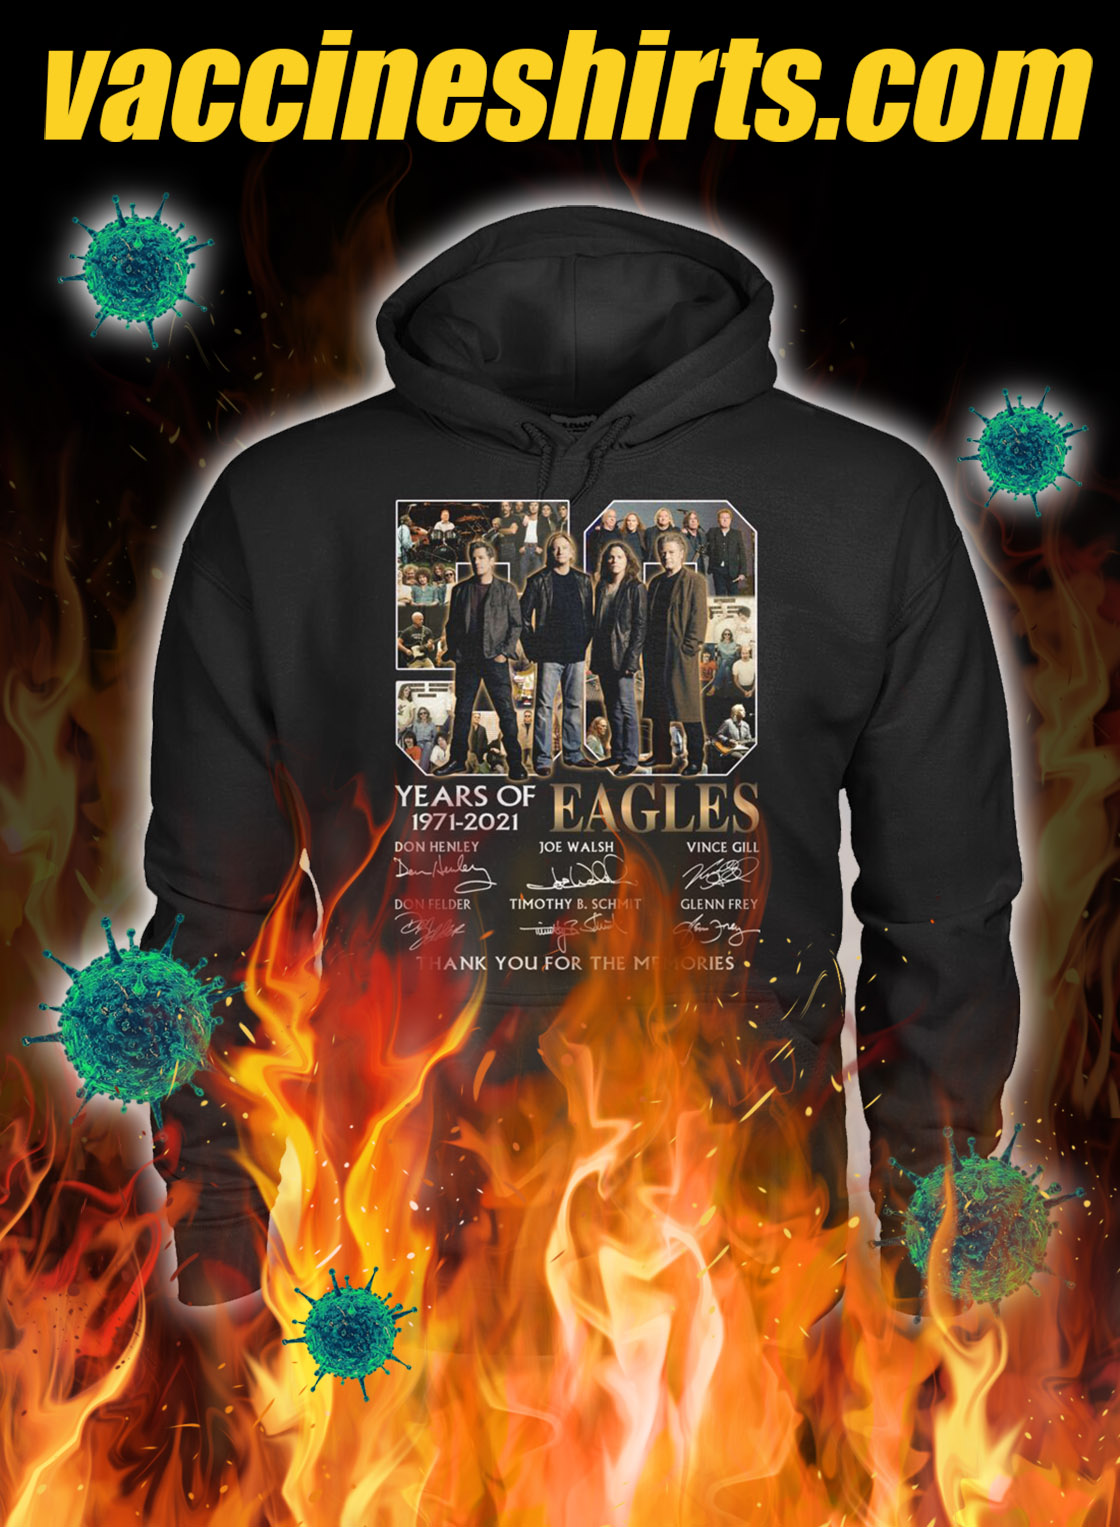 50 years of eagles thank you for the memories signature hoodie